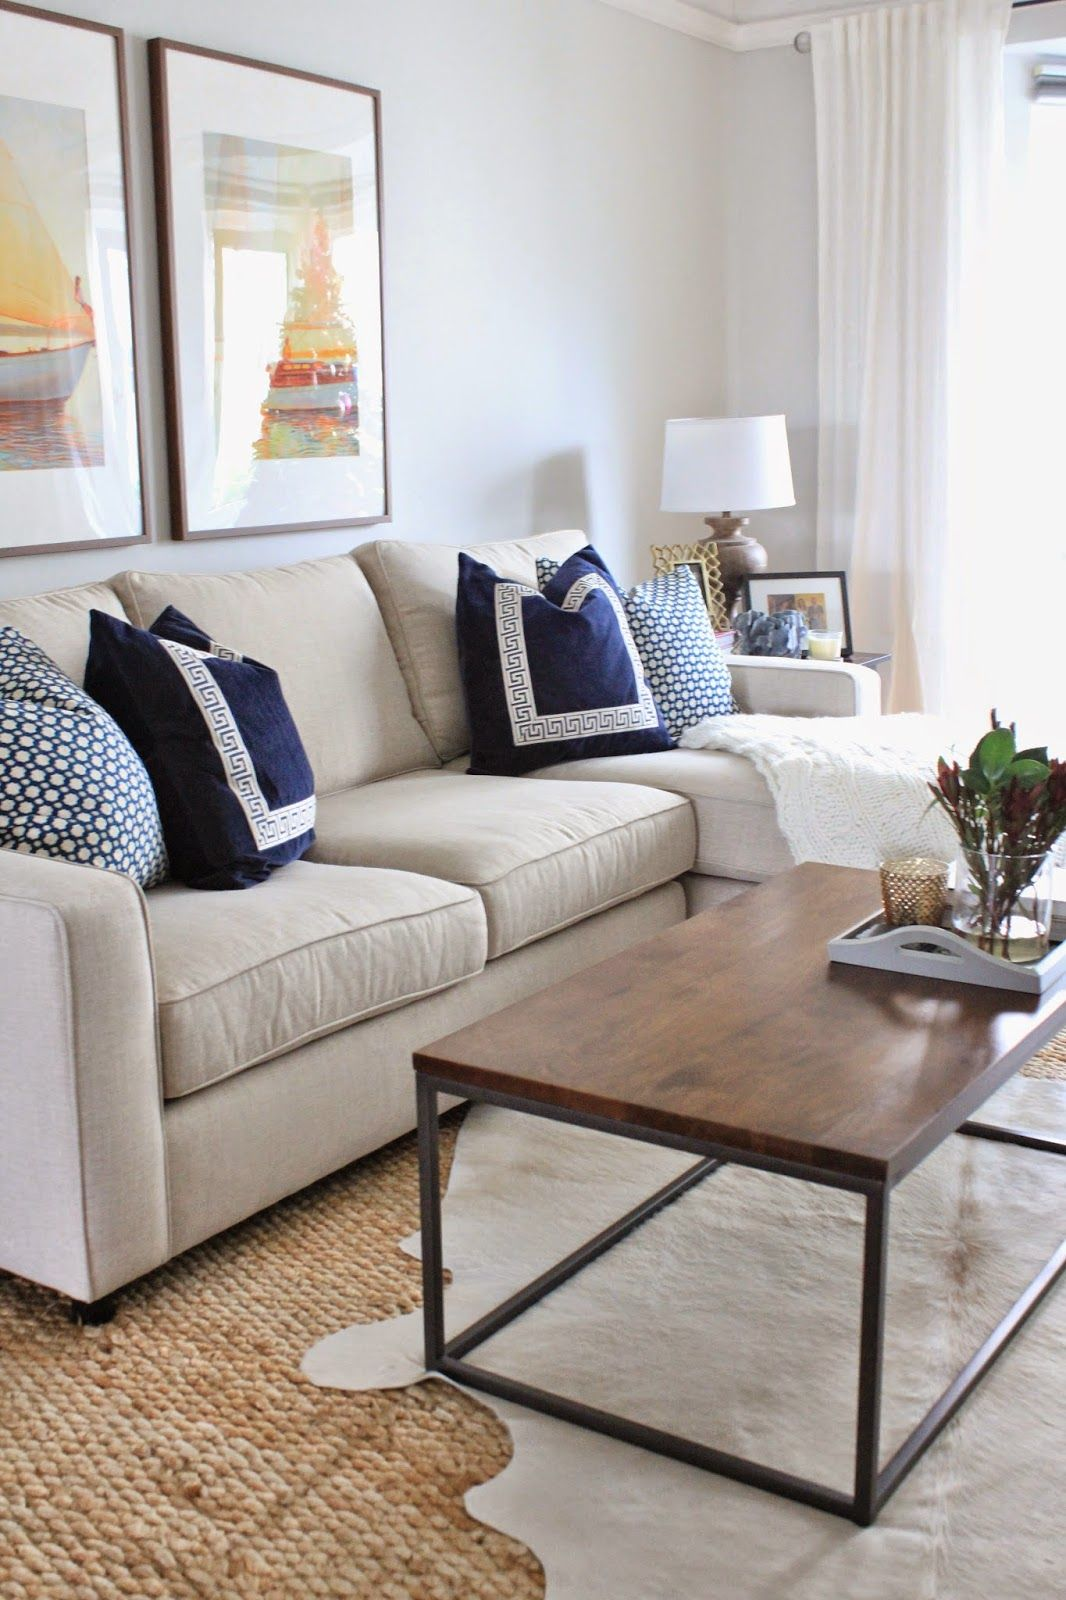 Cup Half Full Living Room Tour Home Decor Pottery Barn Sofa Home Decor Bedroom #pottery #barn #living #room #pictures